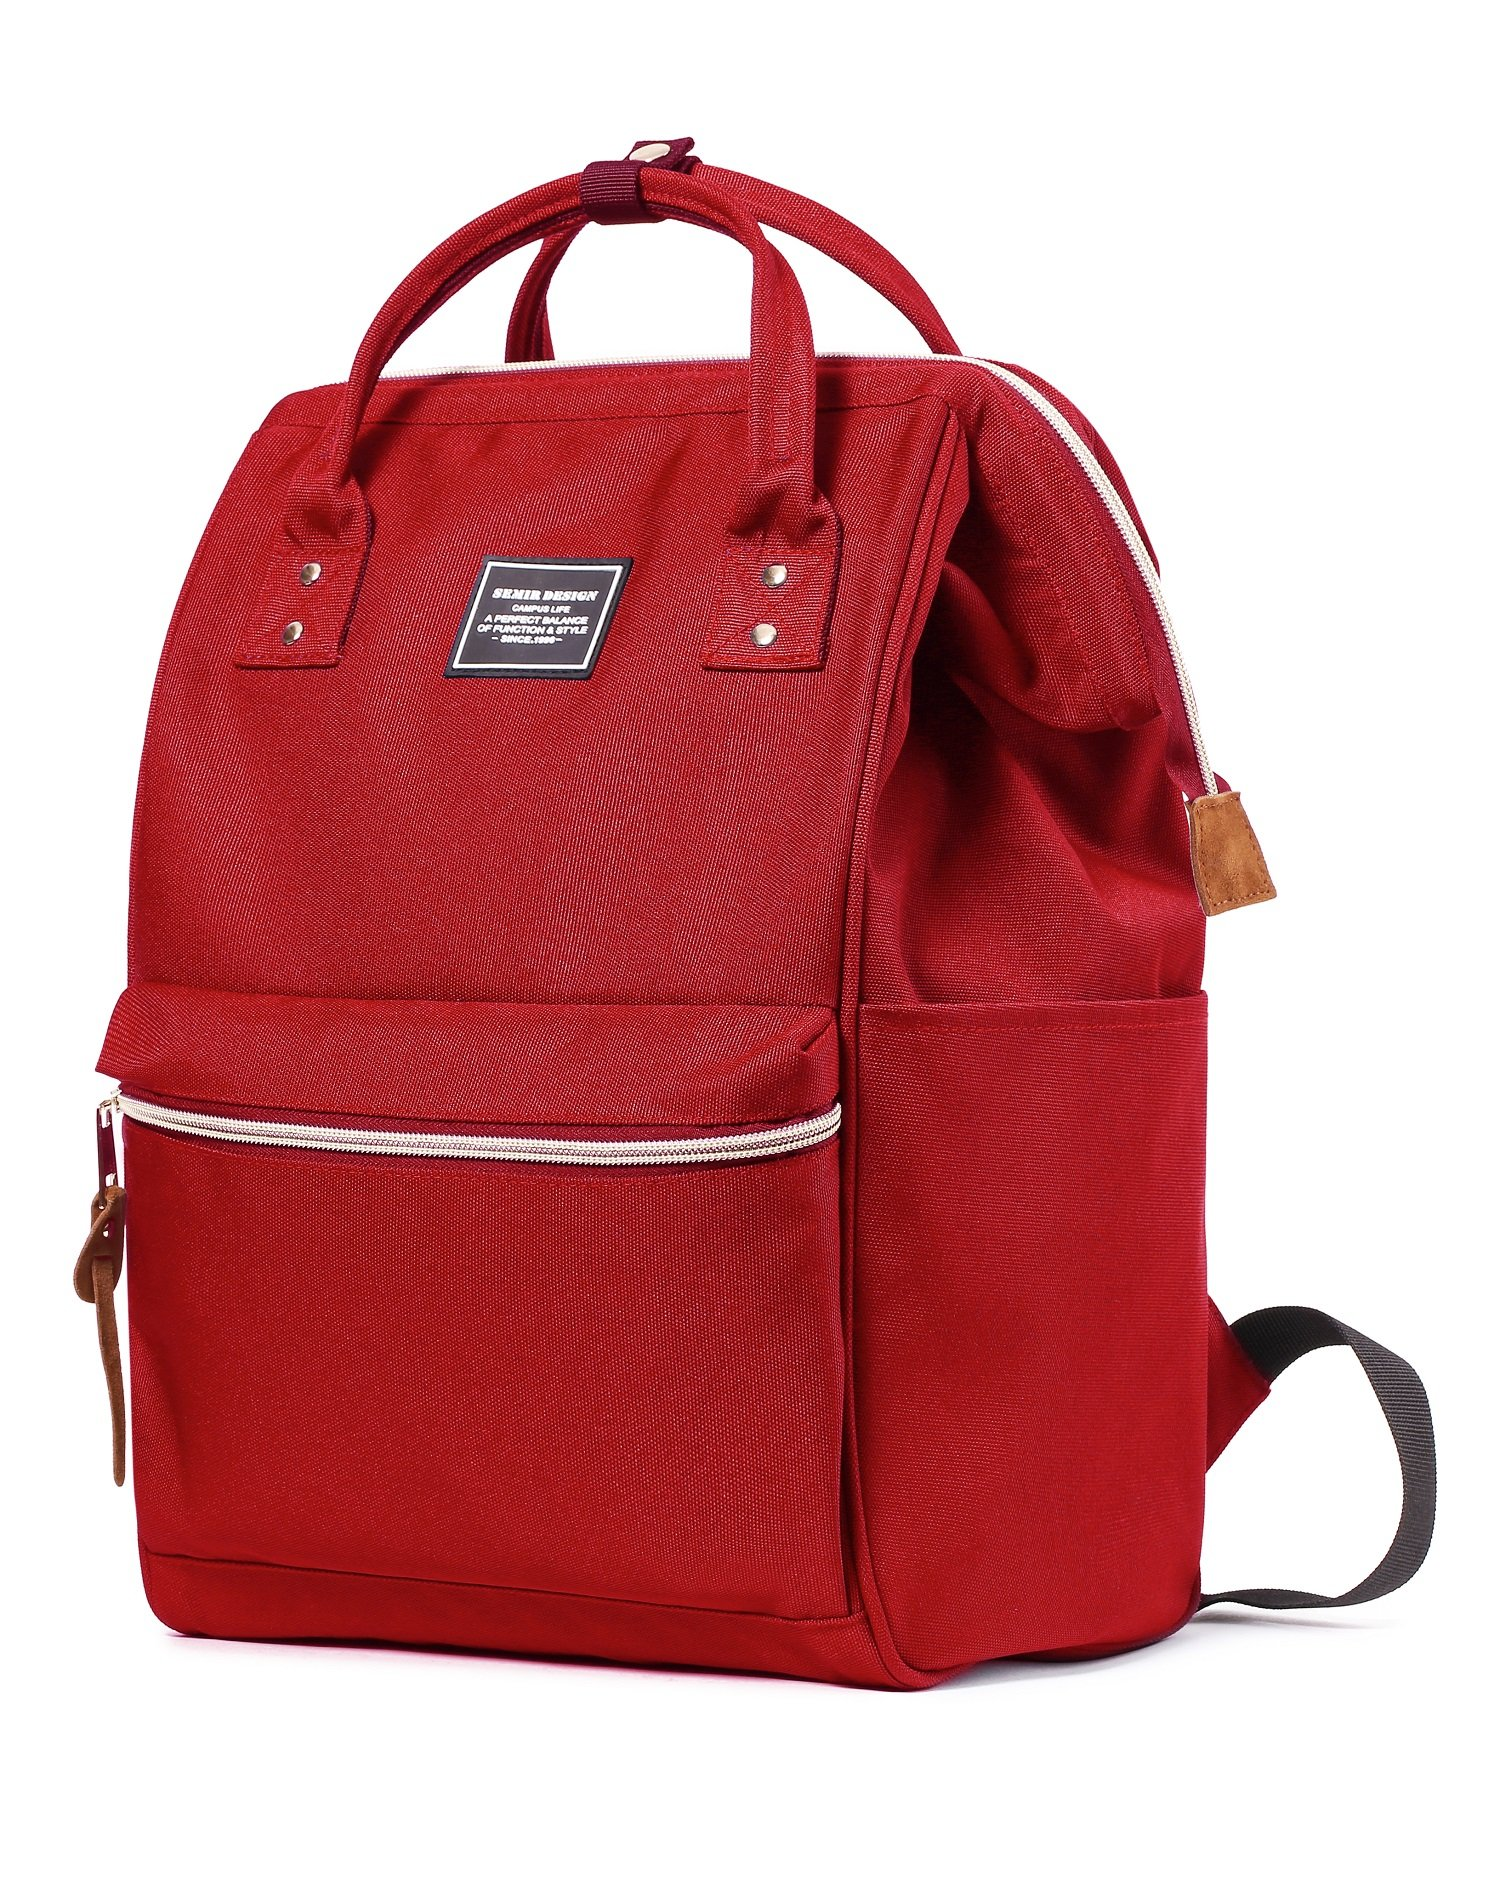 SEMIR Baby Backpack Diaper Bag Tote Fashionable Wide Open Designer Large Mummy Portable Travel Book Backpack with Stroller Straps for Mom Red